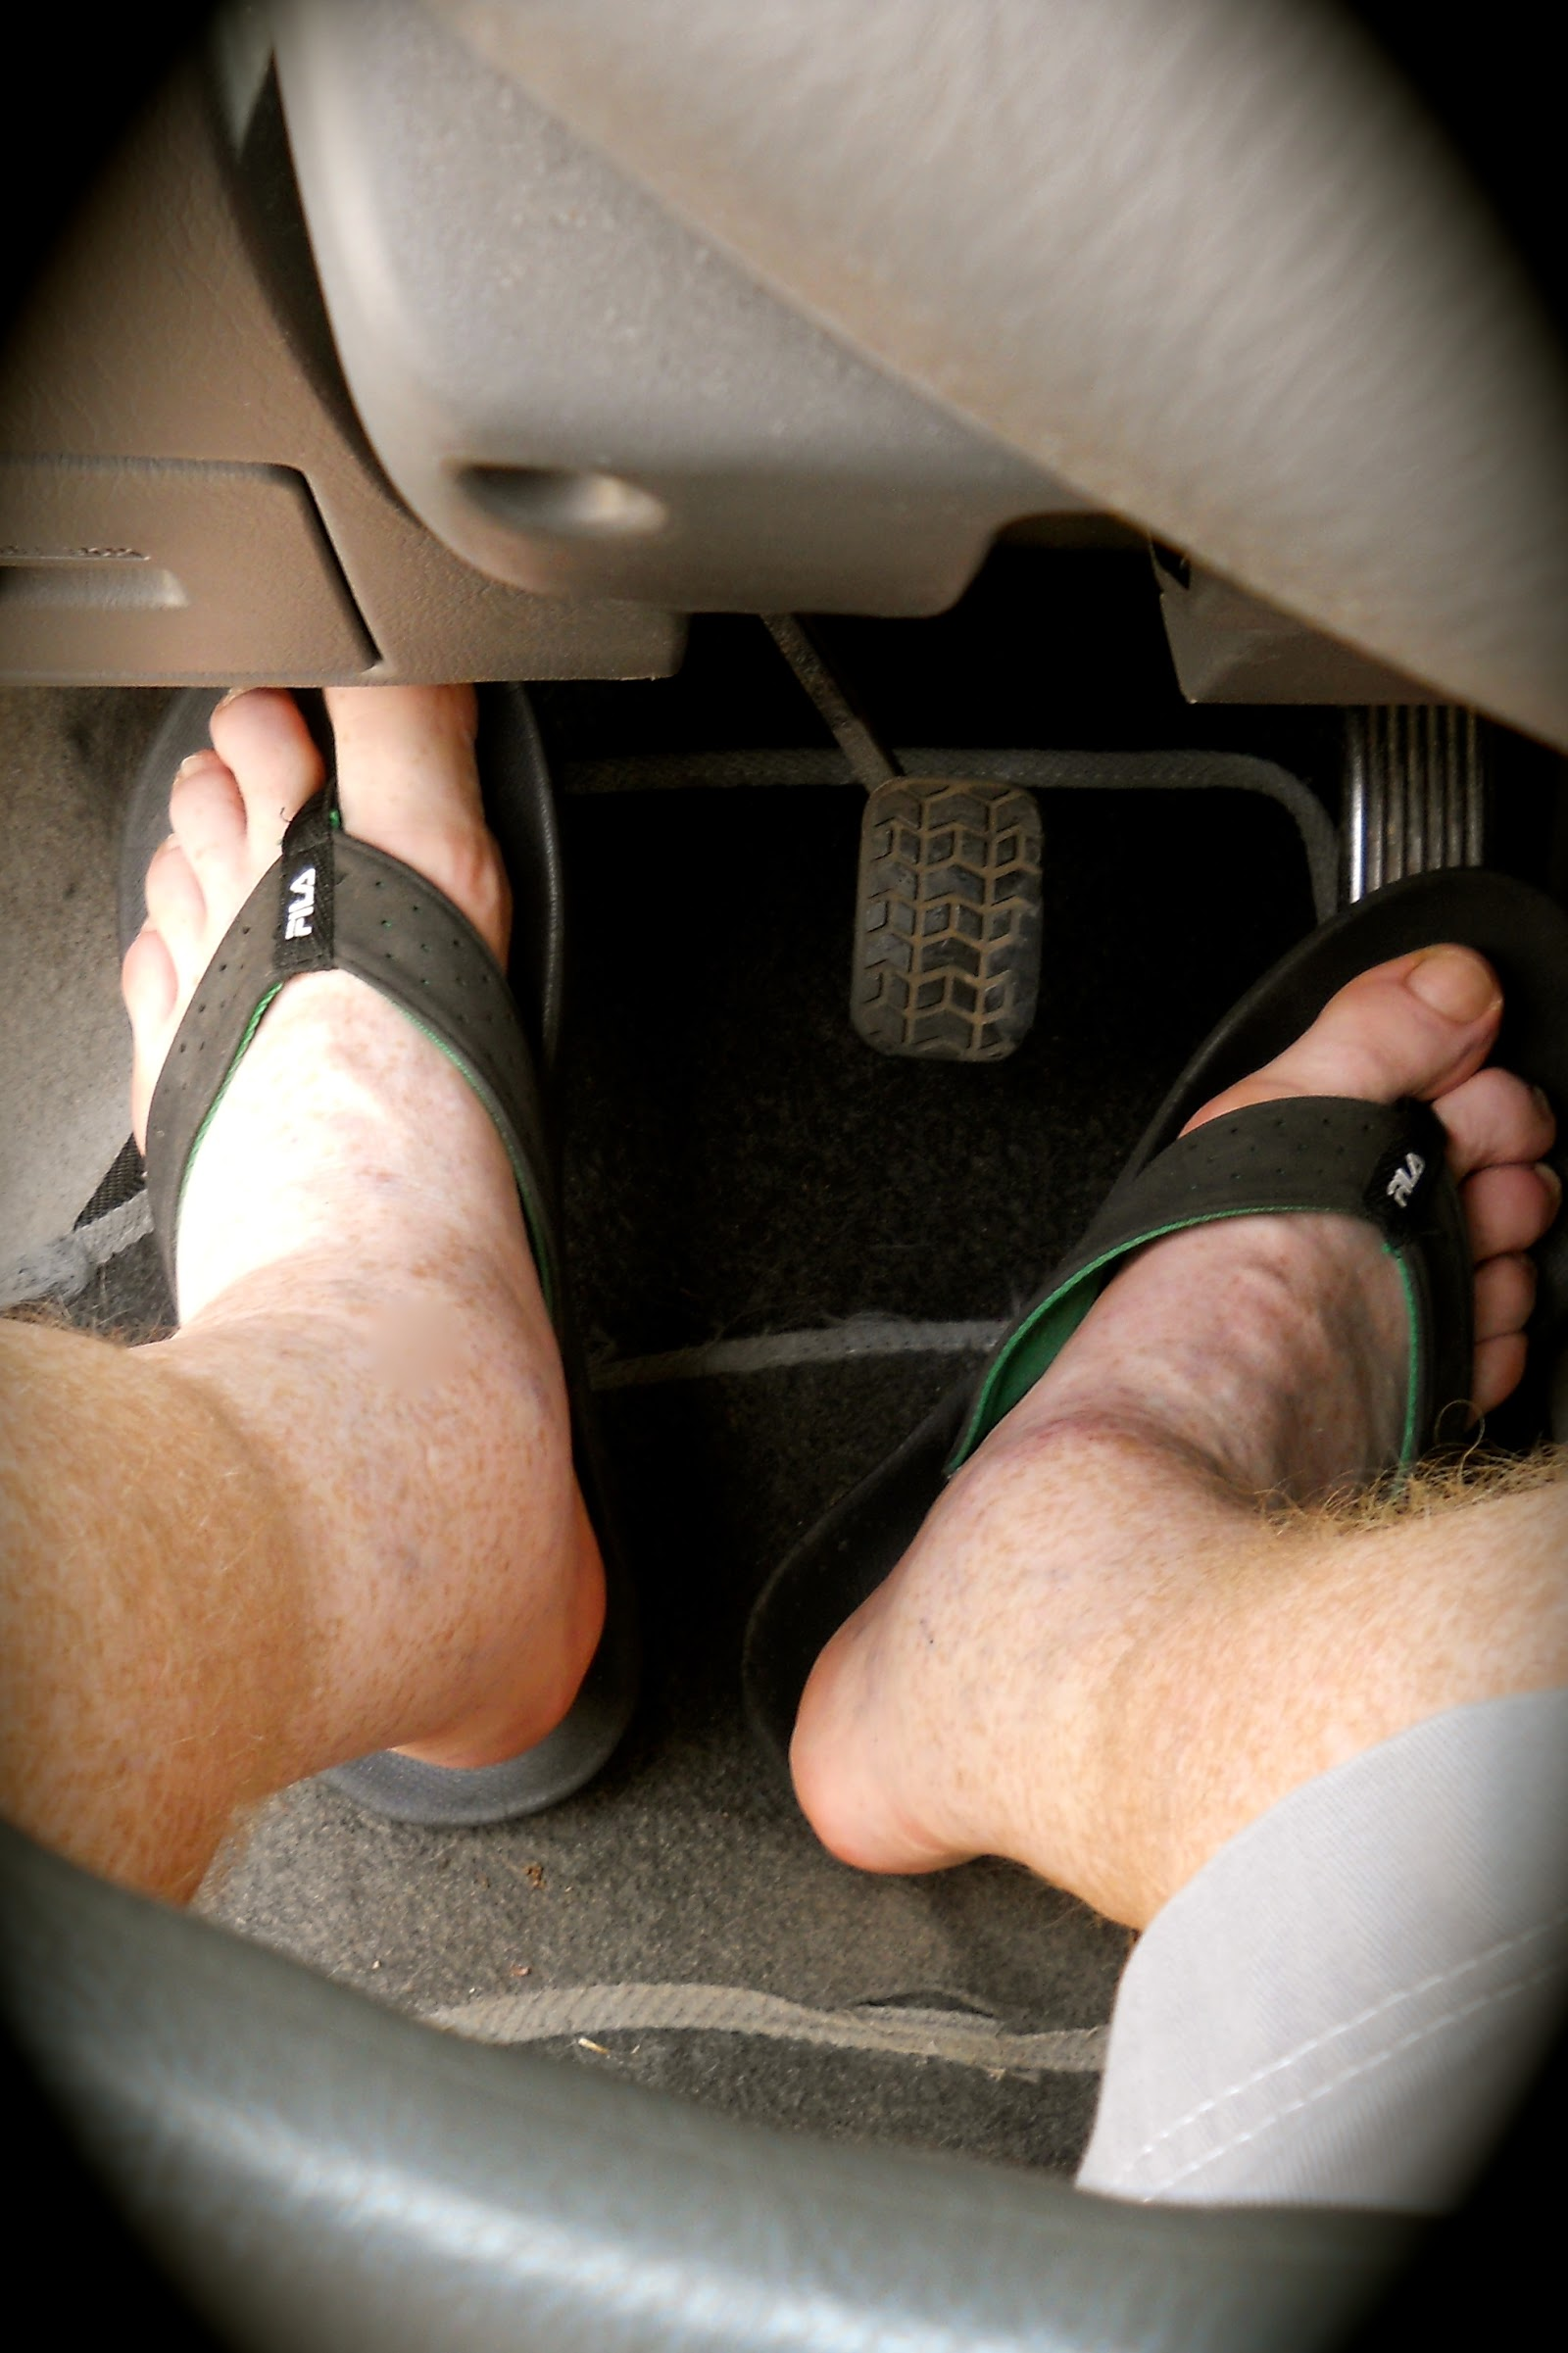 Greece :: Be Warned Driving in Flip Flops Definitely Illegal (Οδήγηση με σαγιονάρες)